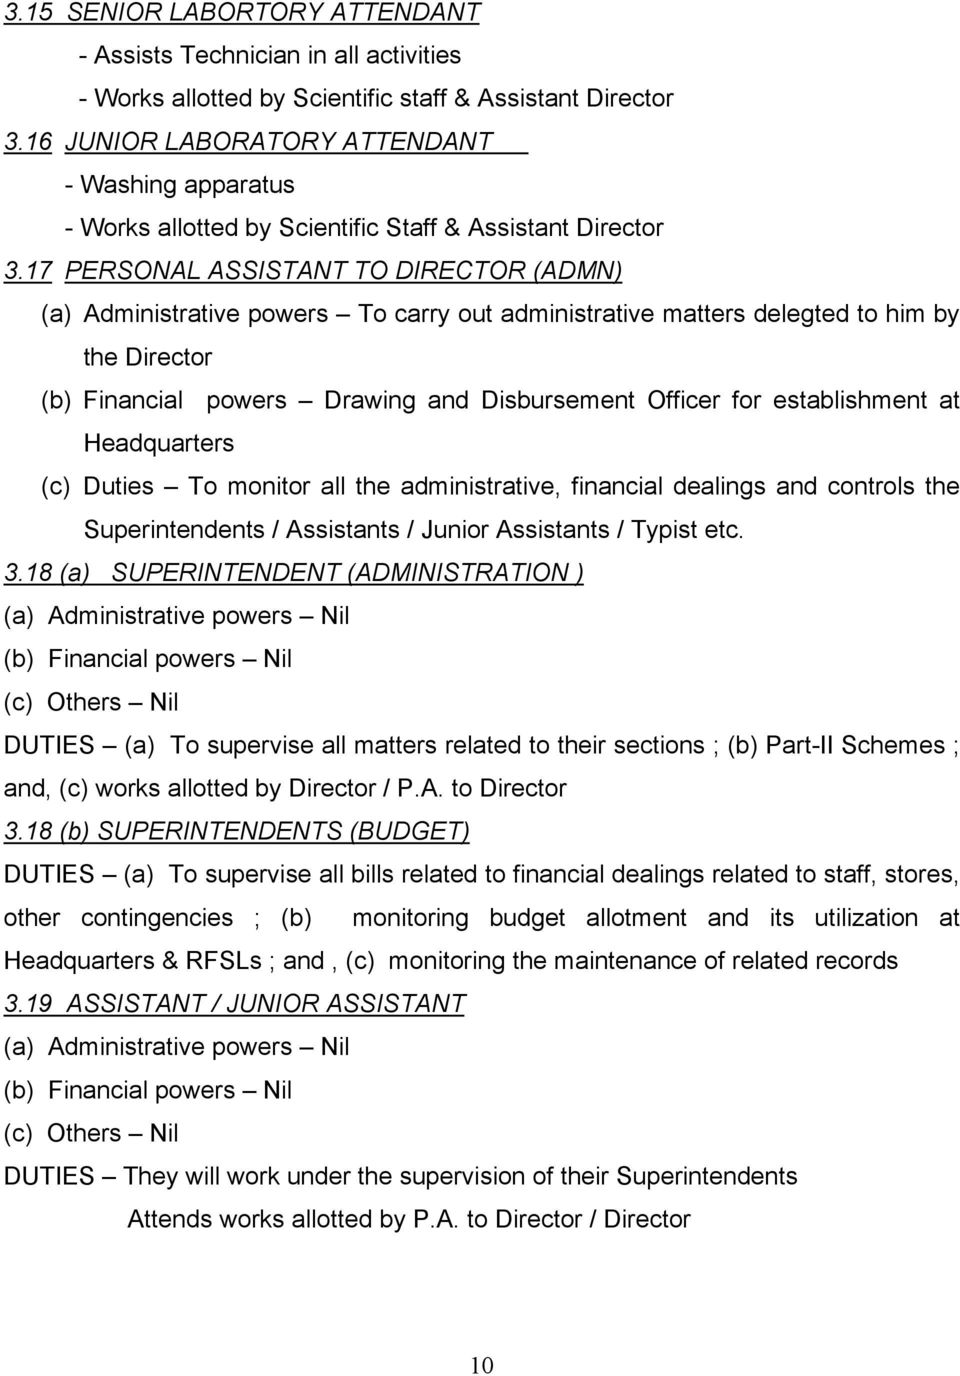 17 PERSONAL ASSISTANT TO DIRECTOR (ADMN) (a) Administrative powers To carry out administrative matters delegted to him by the Director (b) Financial powers Drawing and Disbursement Officer for